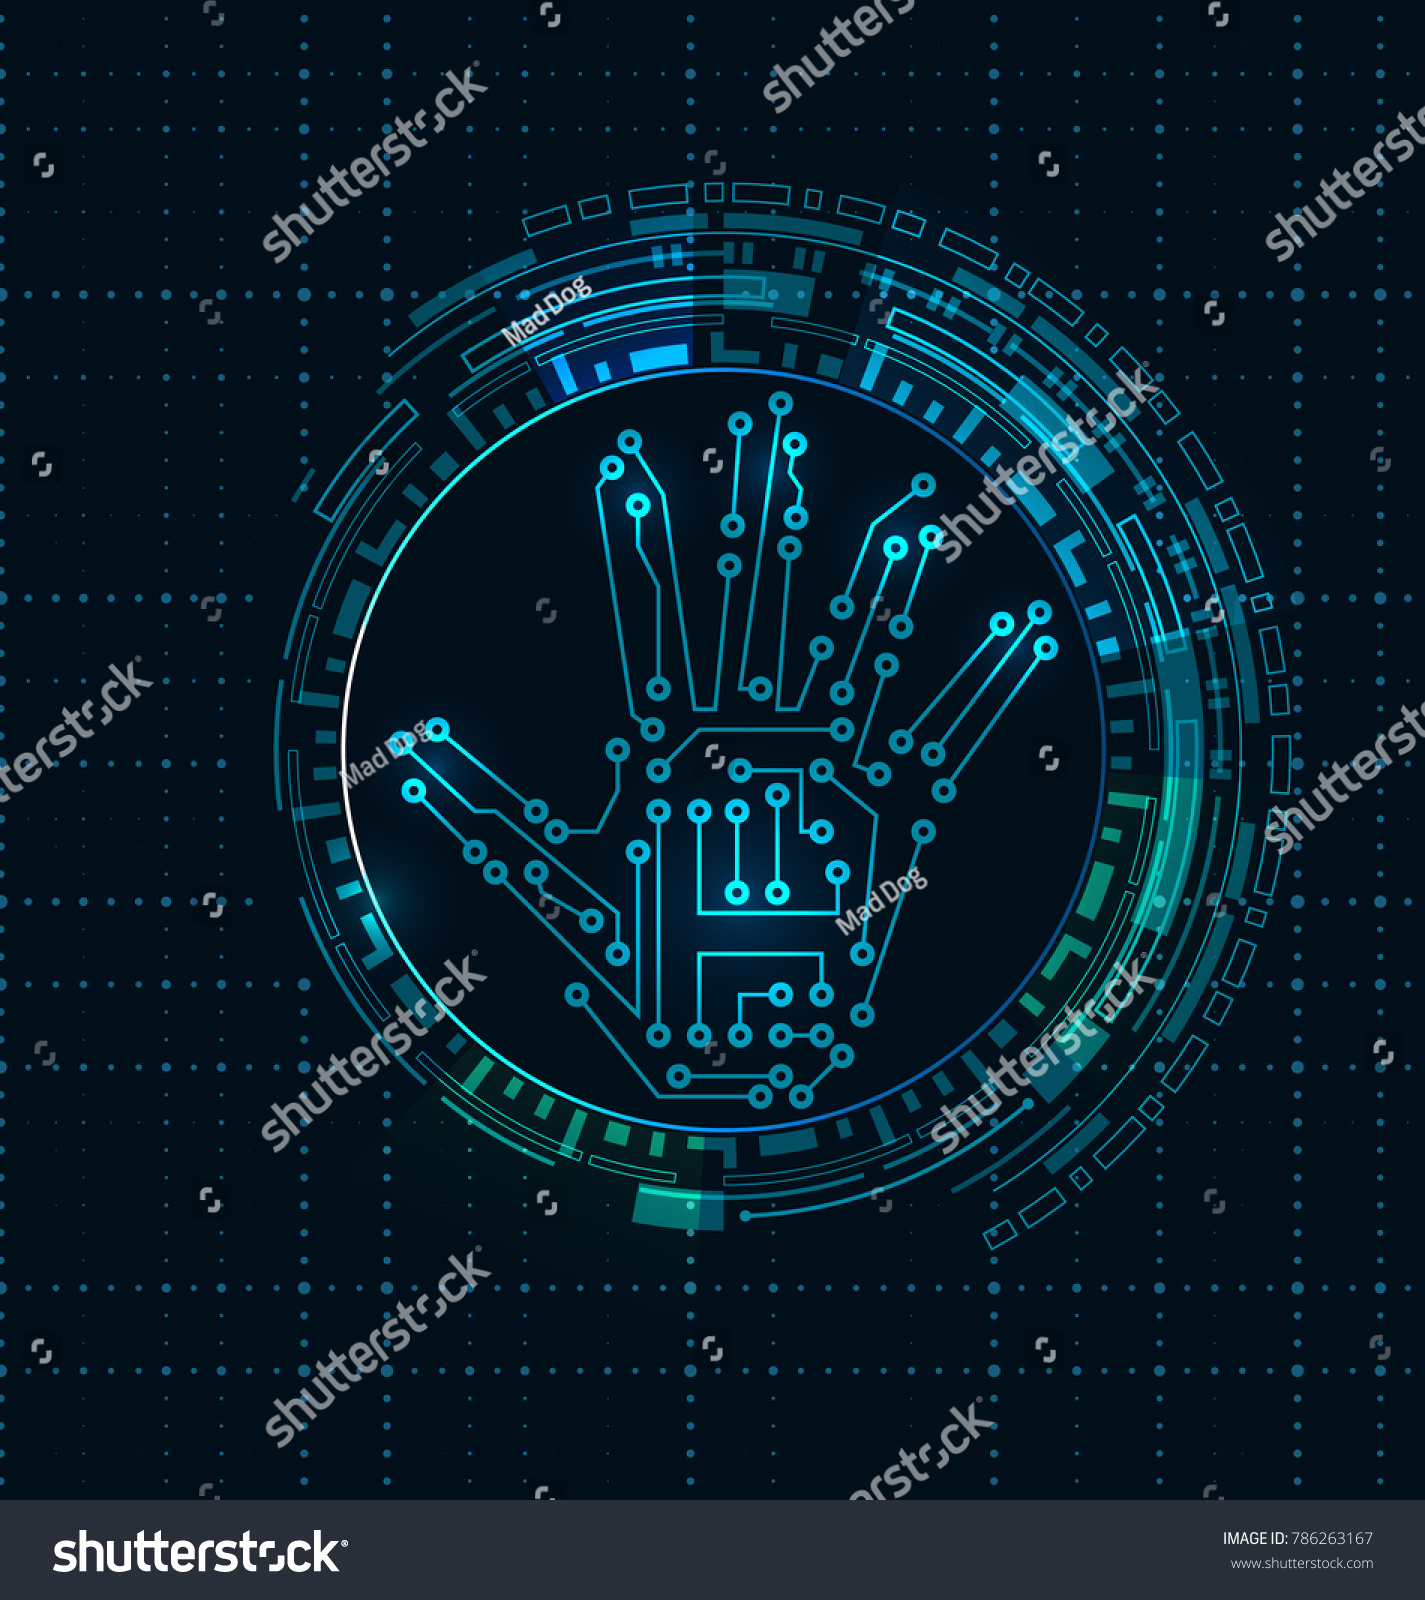 Abstract Hand Scan Electronic Technology Background Stock Mad Dog Wiring Diagram With Circuit Lines Hud Elements